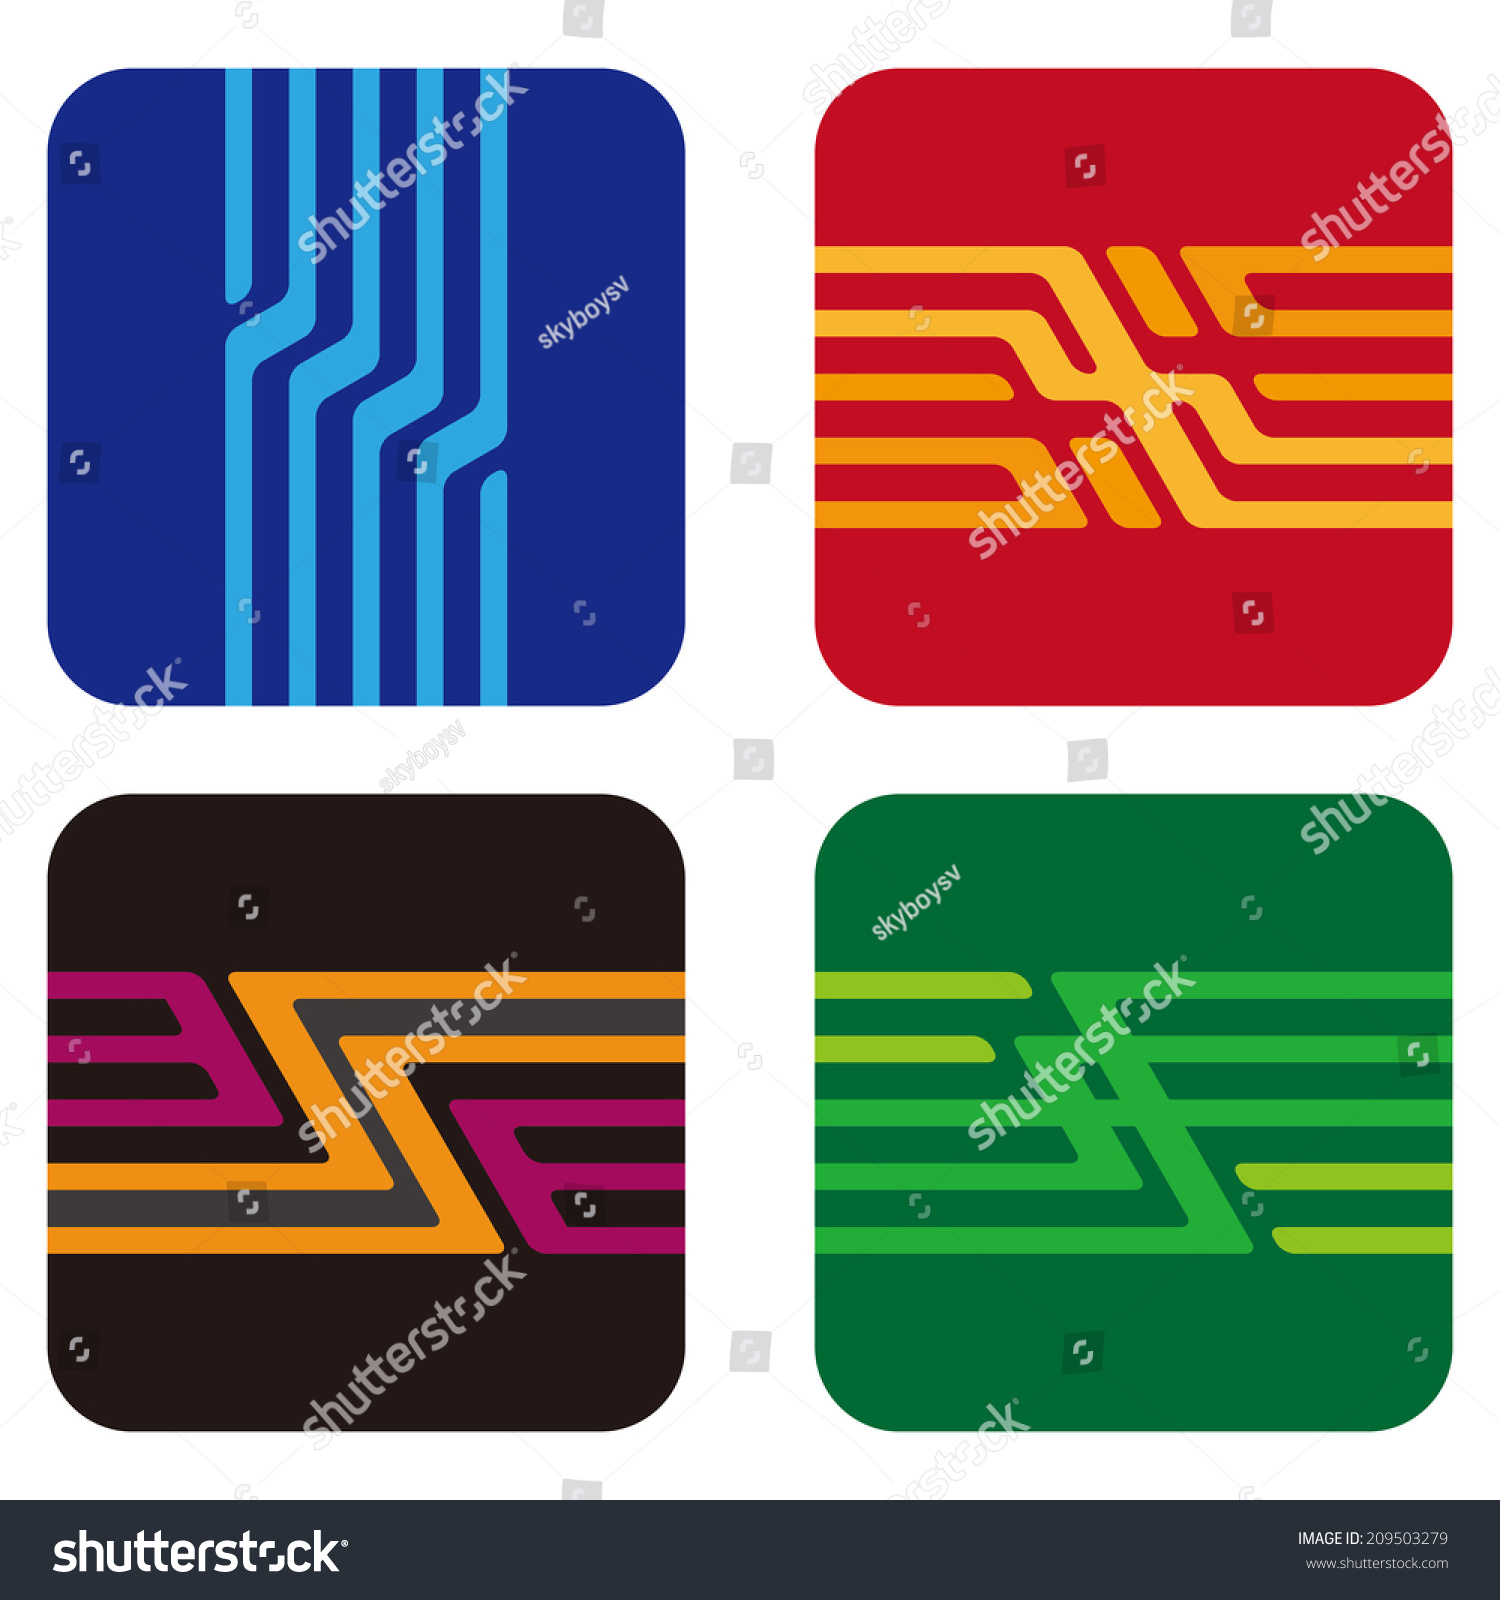 Square Design Abstract Vector Logo Template Stock Royalty Uses Of Integrated Circuits You Can Use In The Chips Electronics